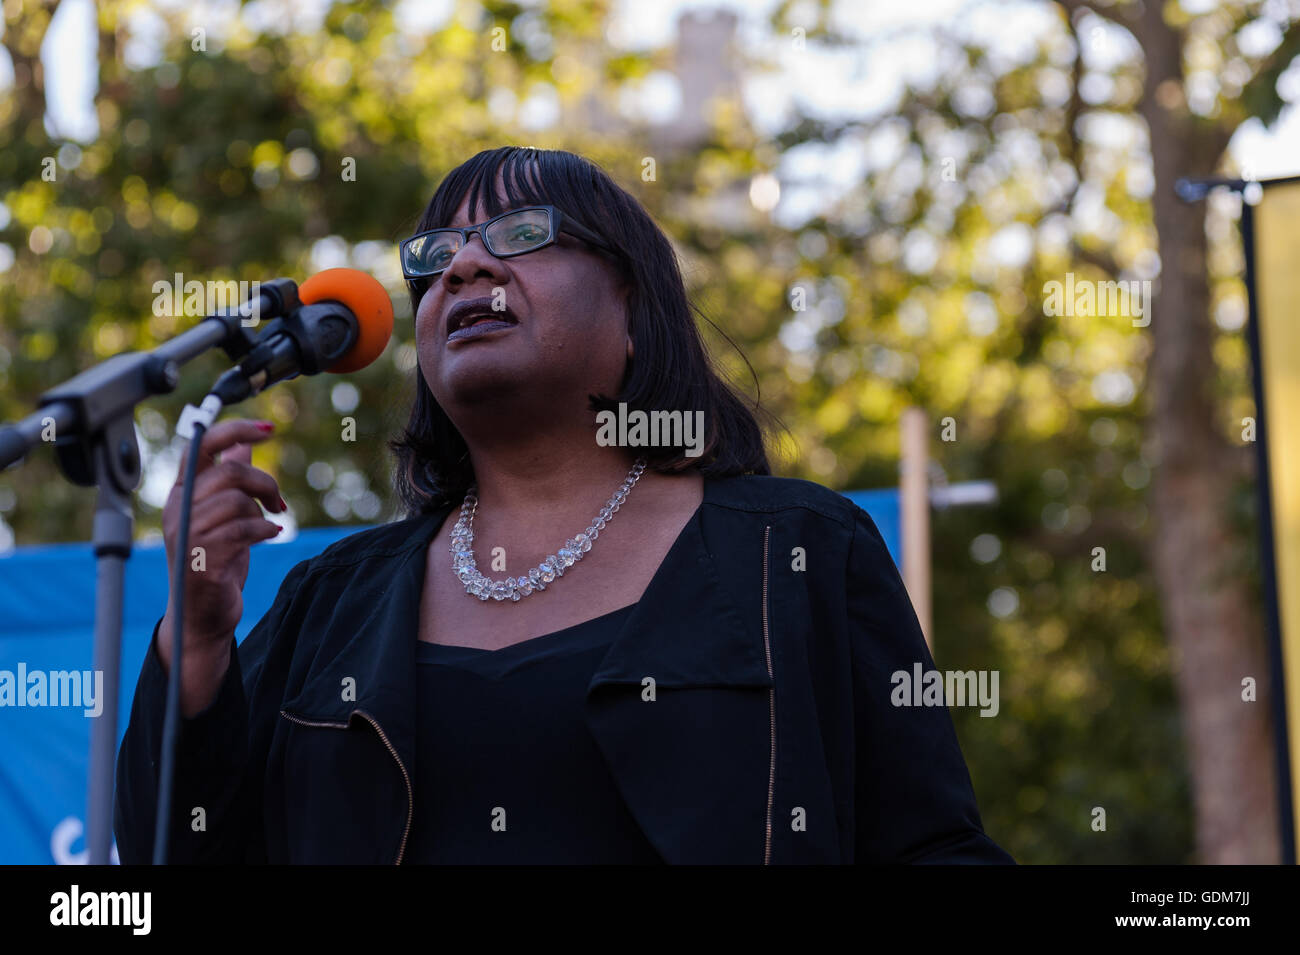 London, UK. 18th July 2016. Diane Abbott, the Shadow Health Secretary makes a speech at anti-nuclear protest against - Stock Image